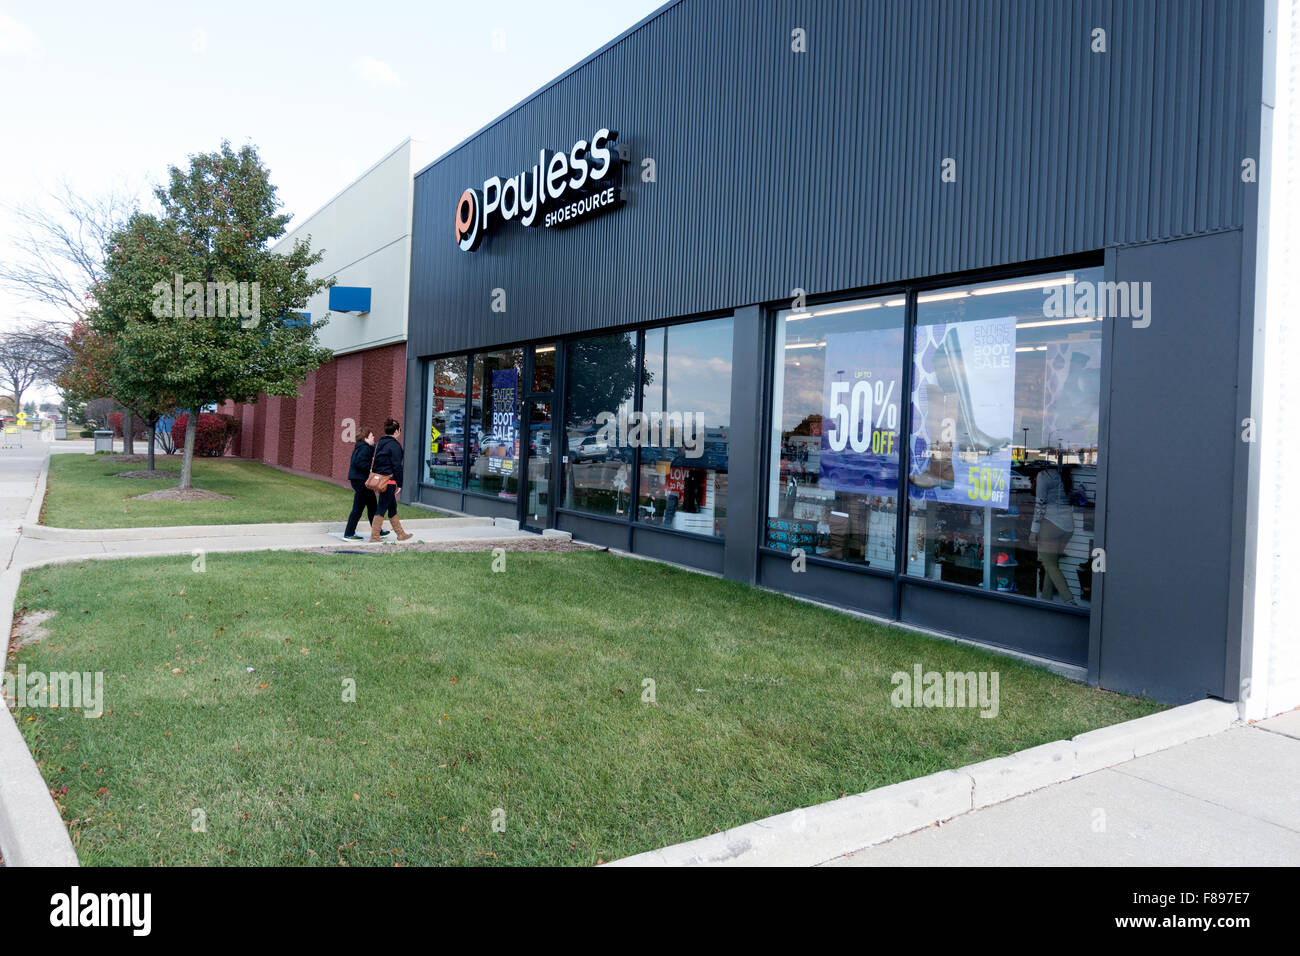 Customers arriving at Payless ShoeSource to shop for shoes